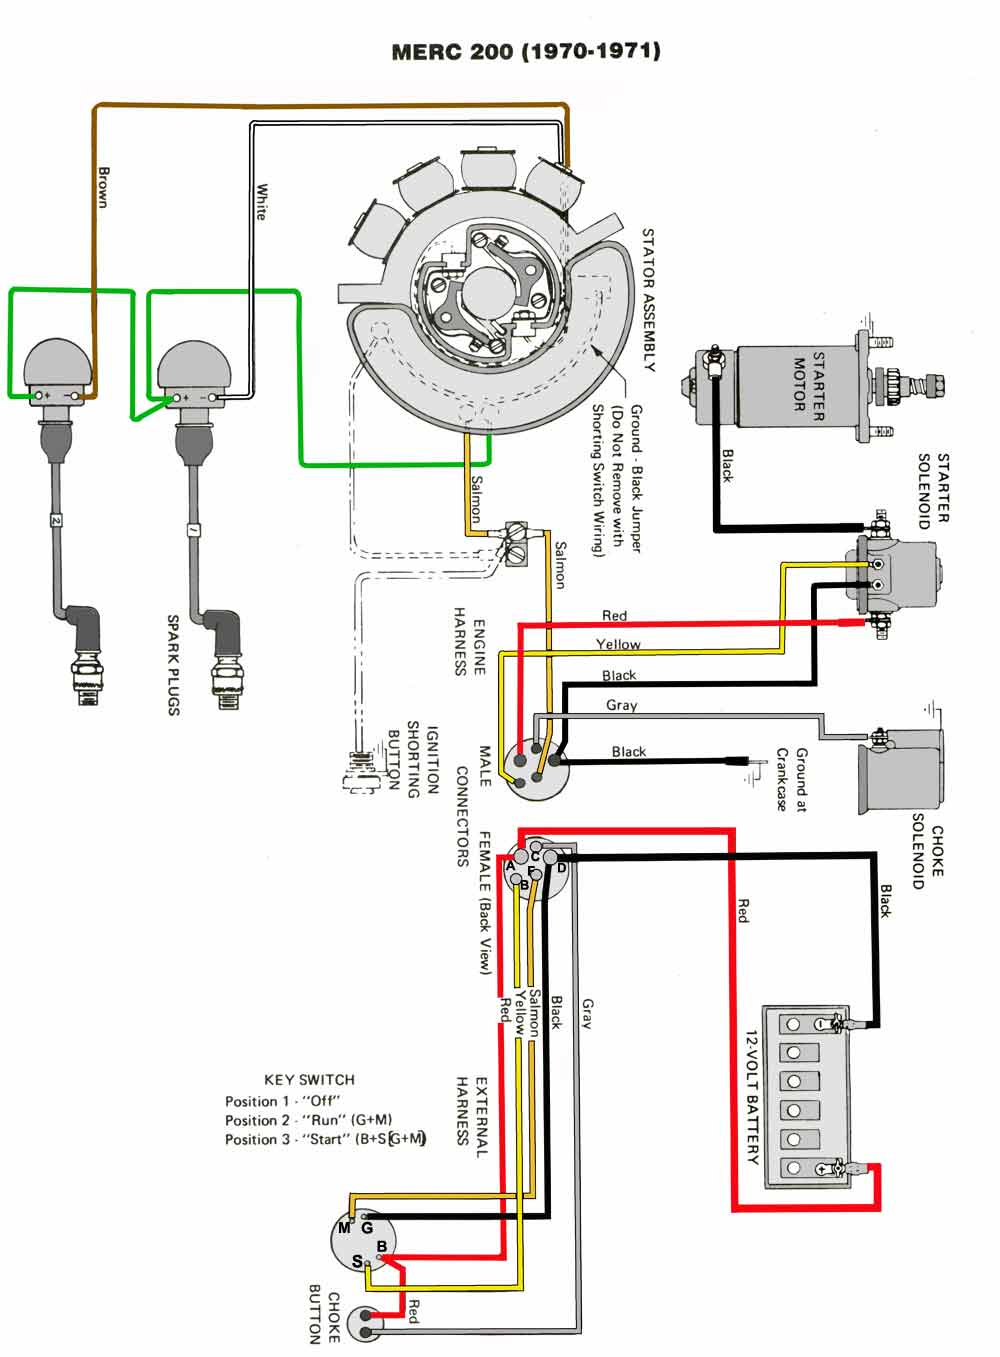 mercury outboard wire harness diagram example electrical wiring rh olkha co mercury outboard wiring harness diagram mercury outboard wiring harness diagram